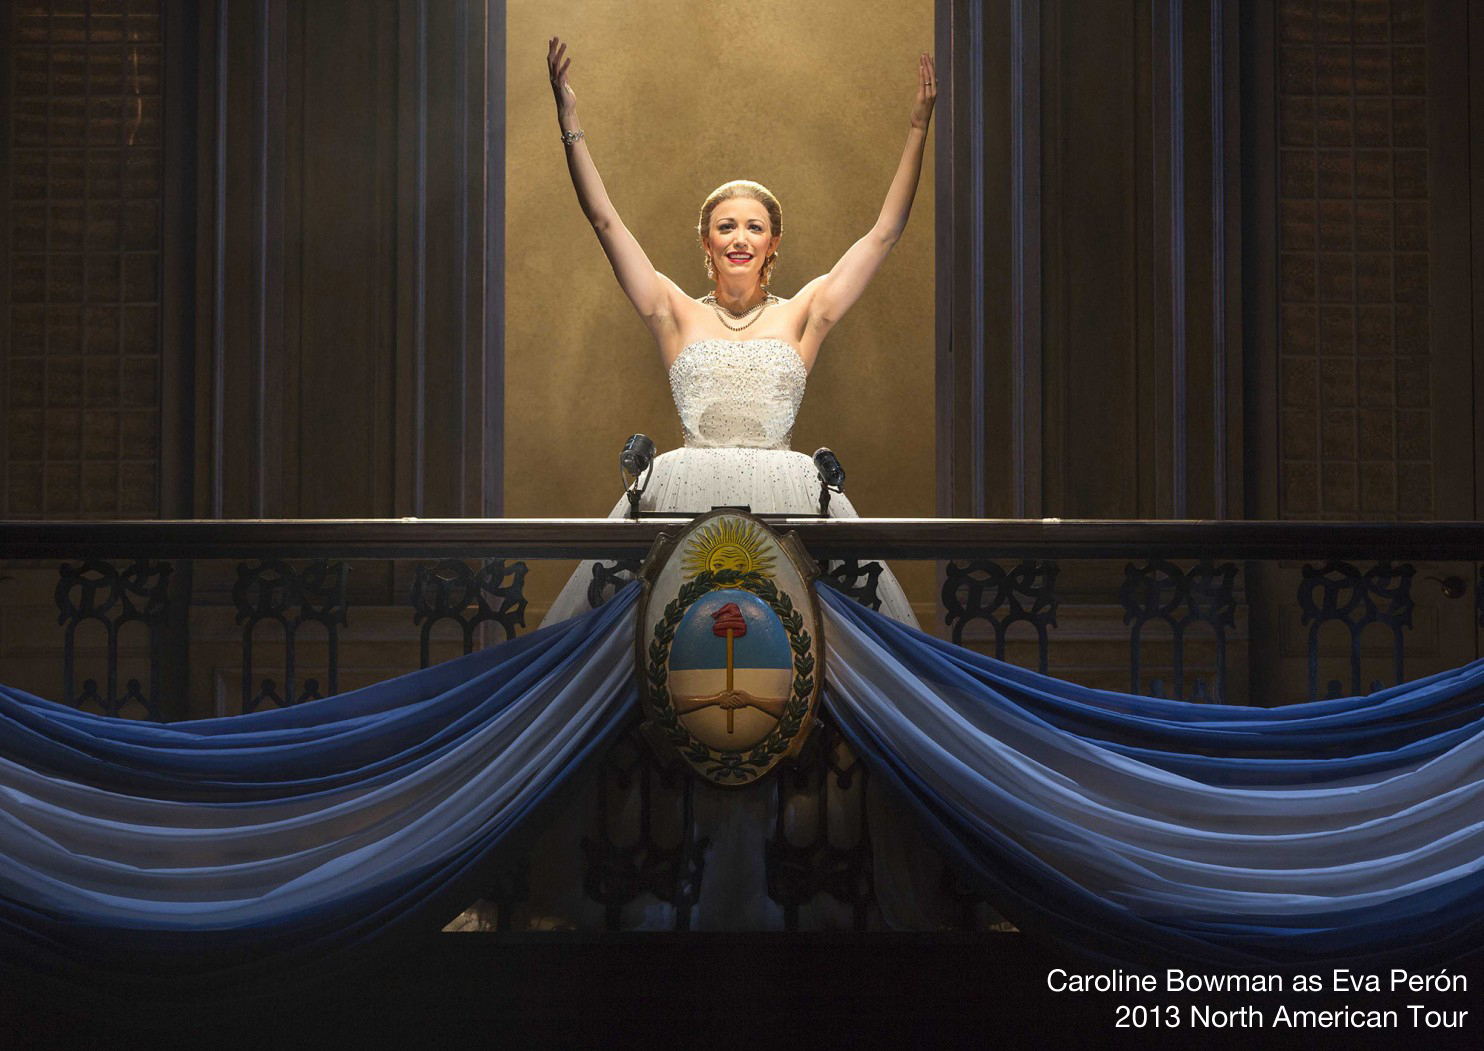 Caroline Bowman as Evita / The Vancouver Opera